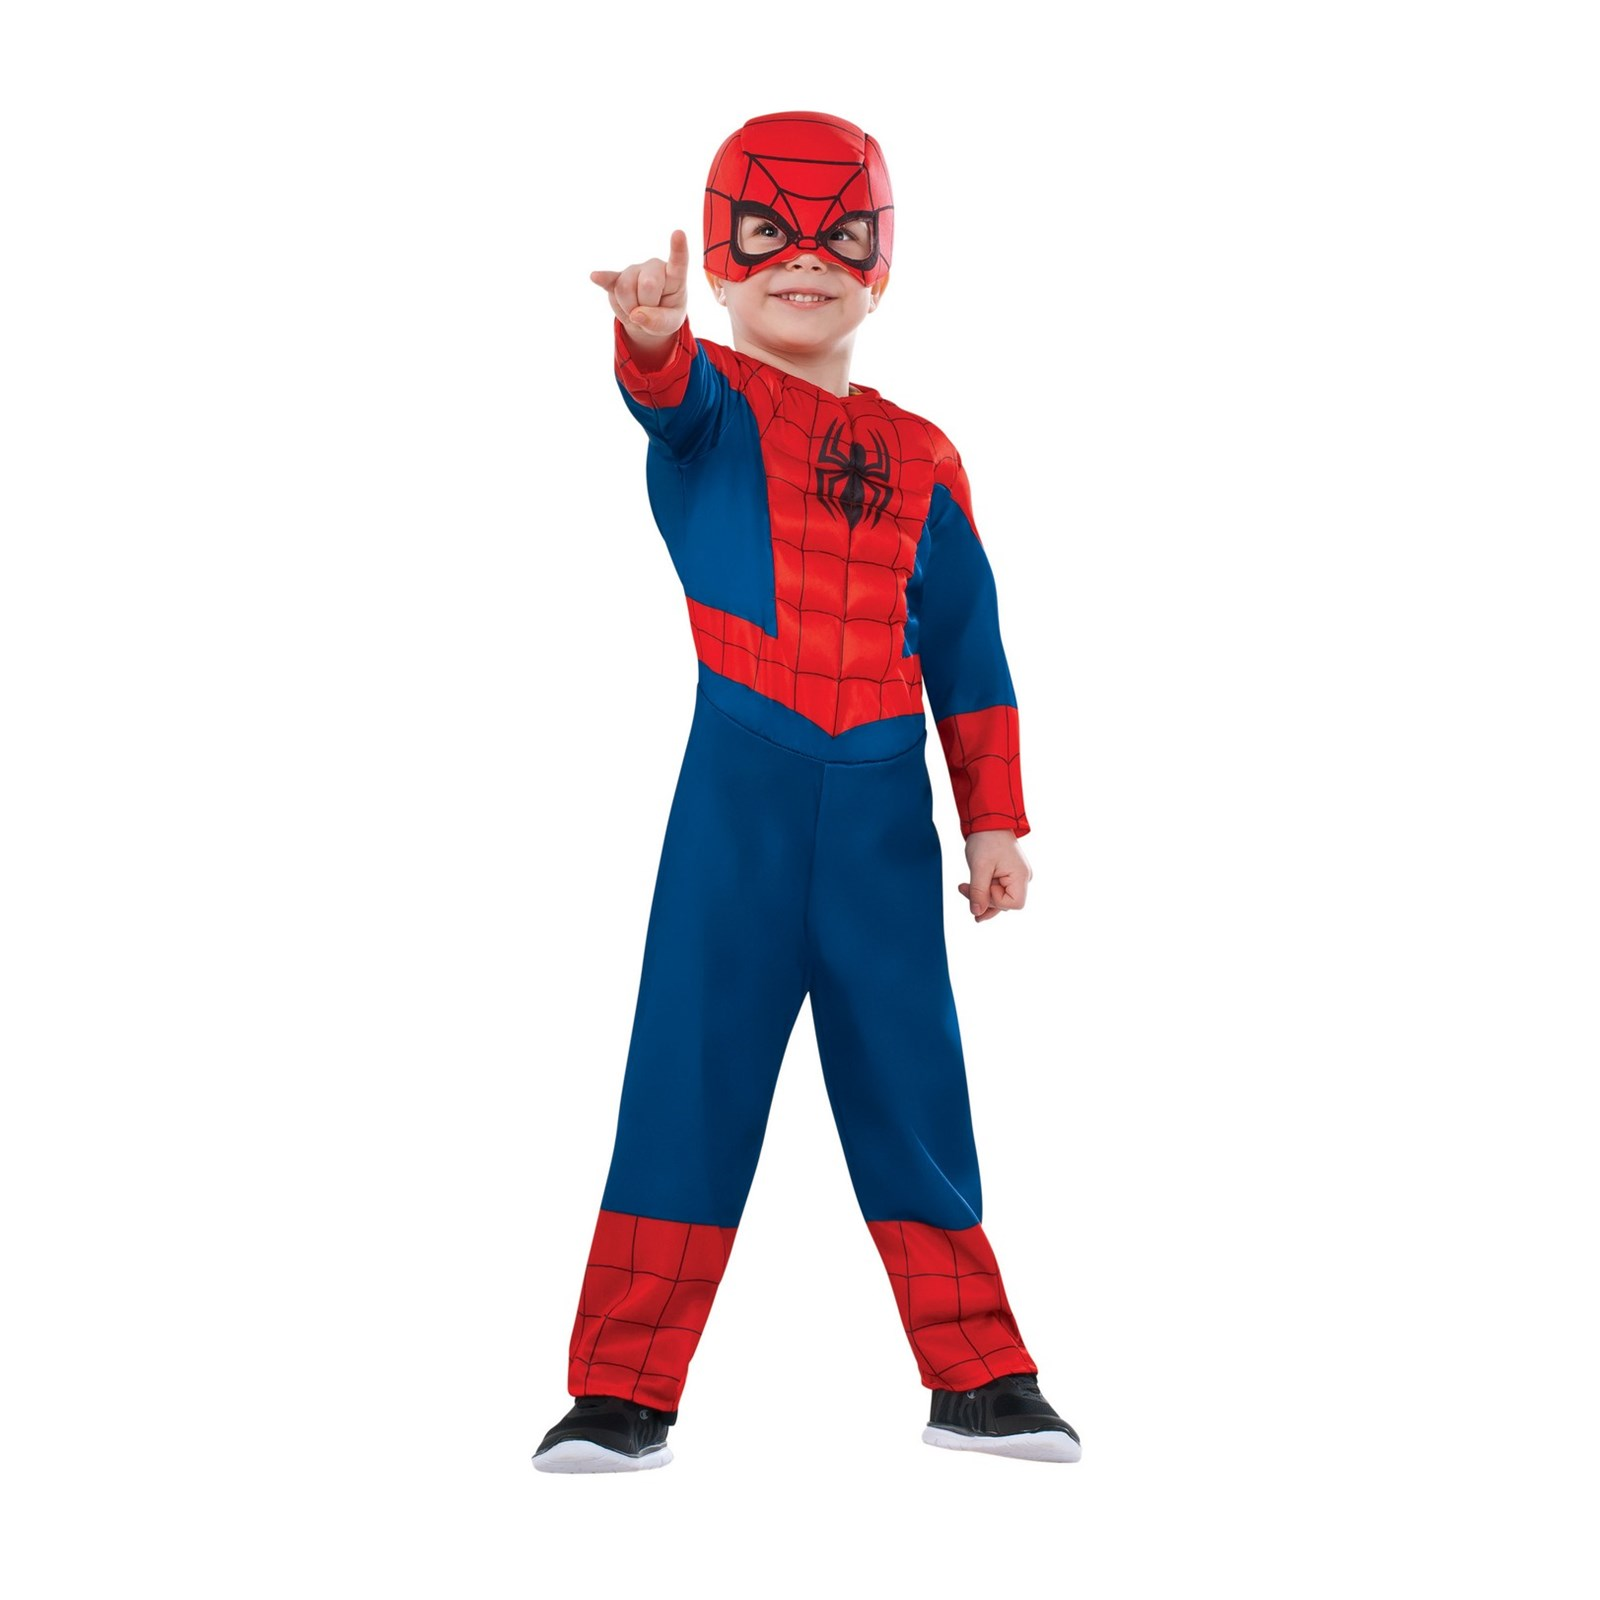 Boys Cosplay* Costume Role Play Spider-Man Batman SuperMan Complete Full Outfit